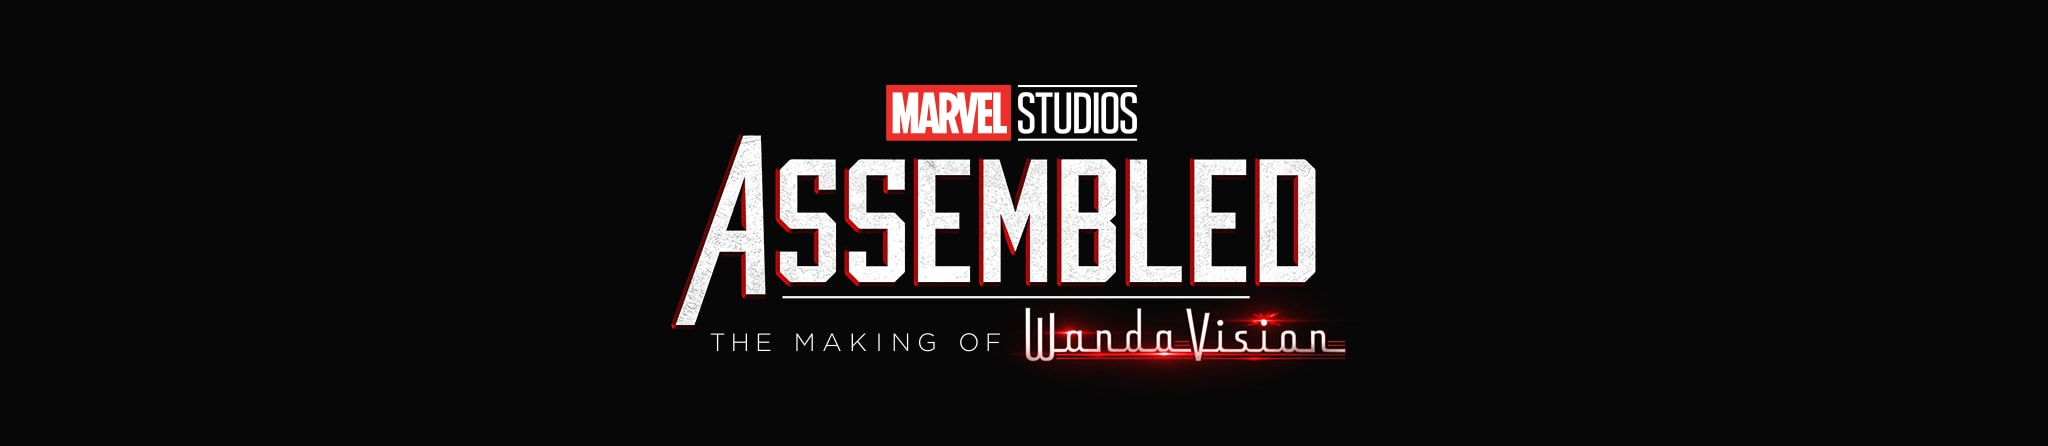 Marvel Studios: Assembled - The Making of WandaVision